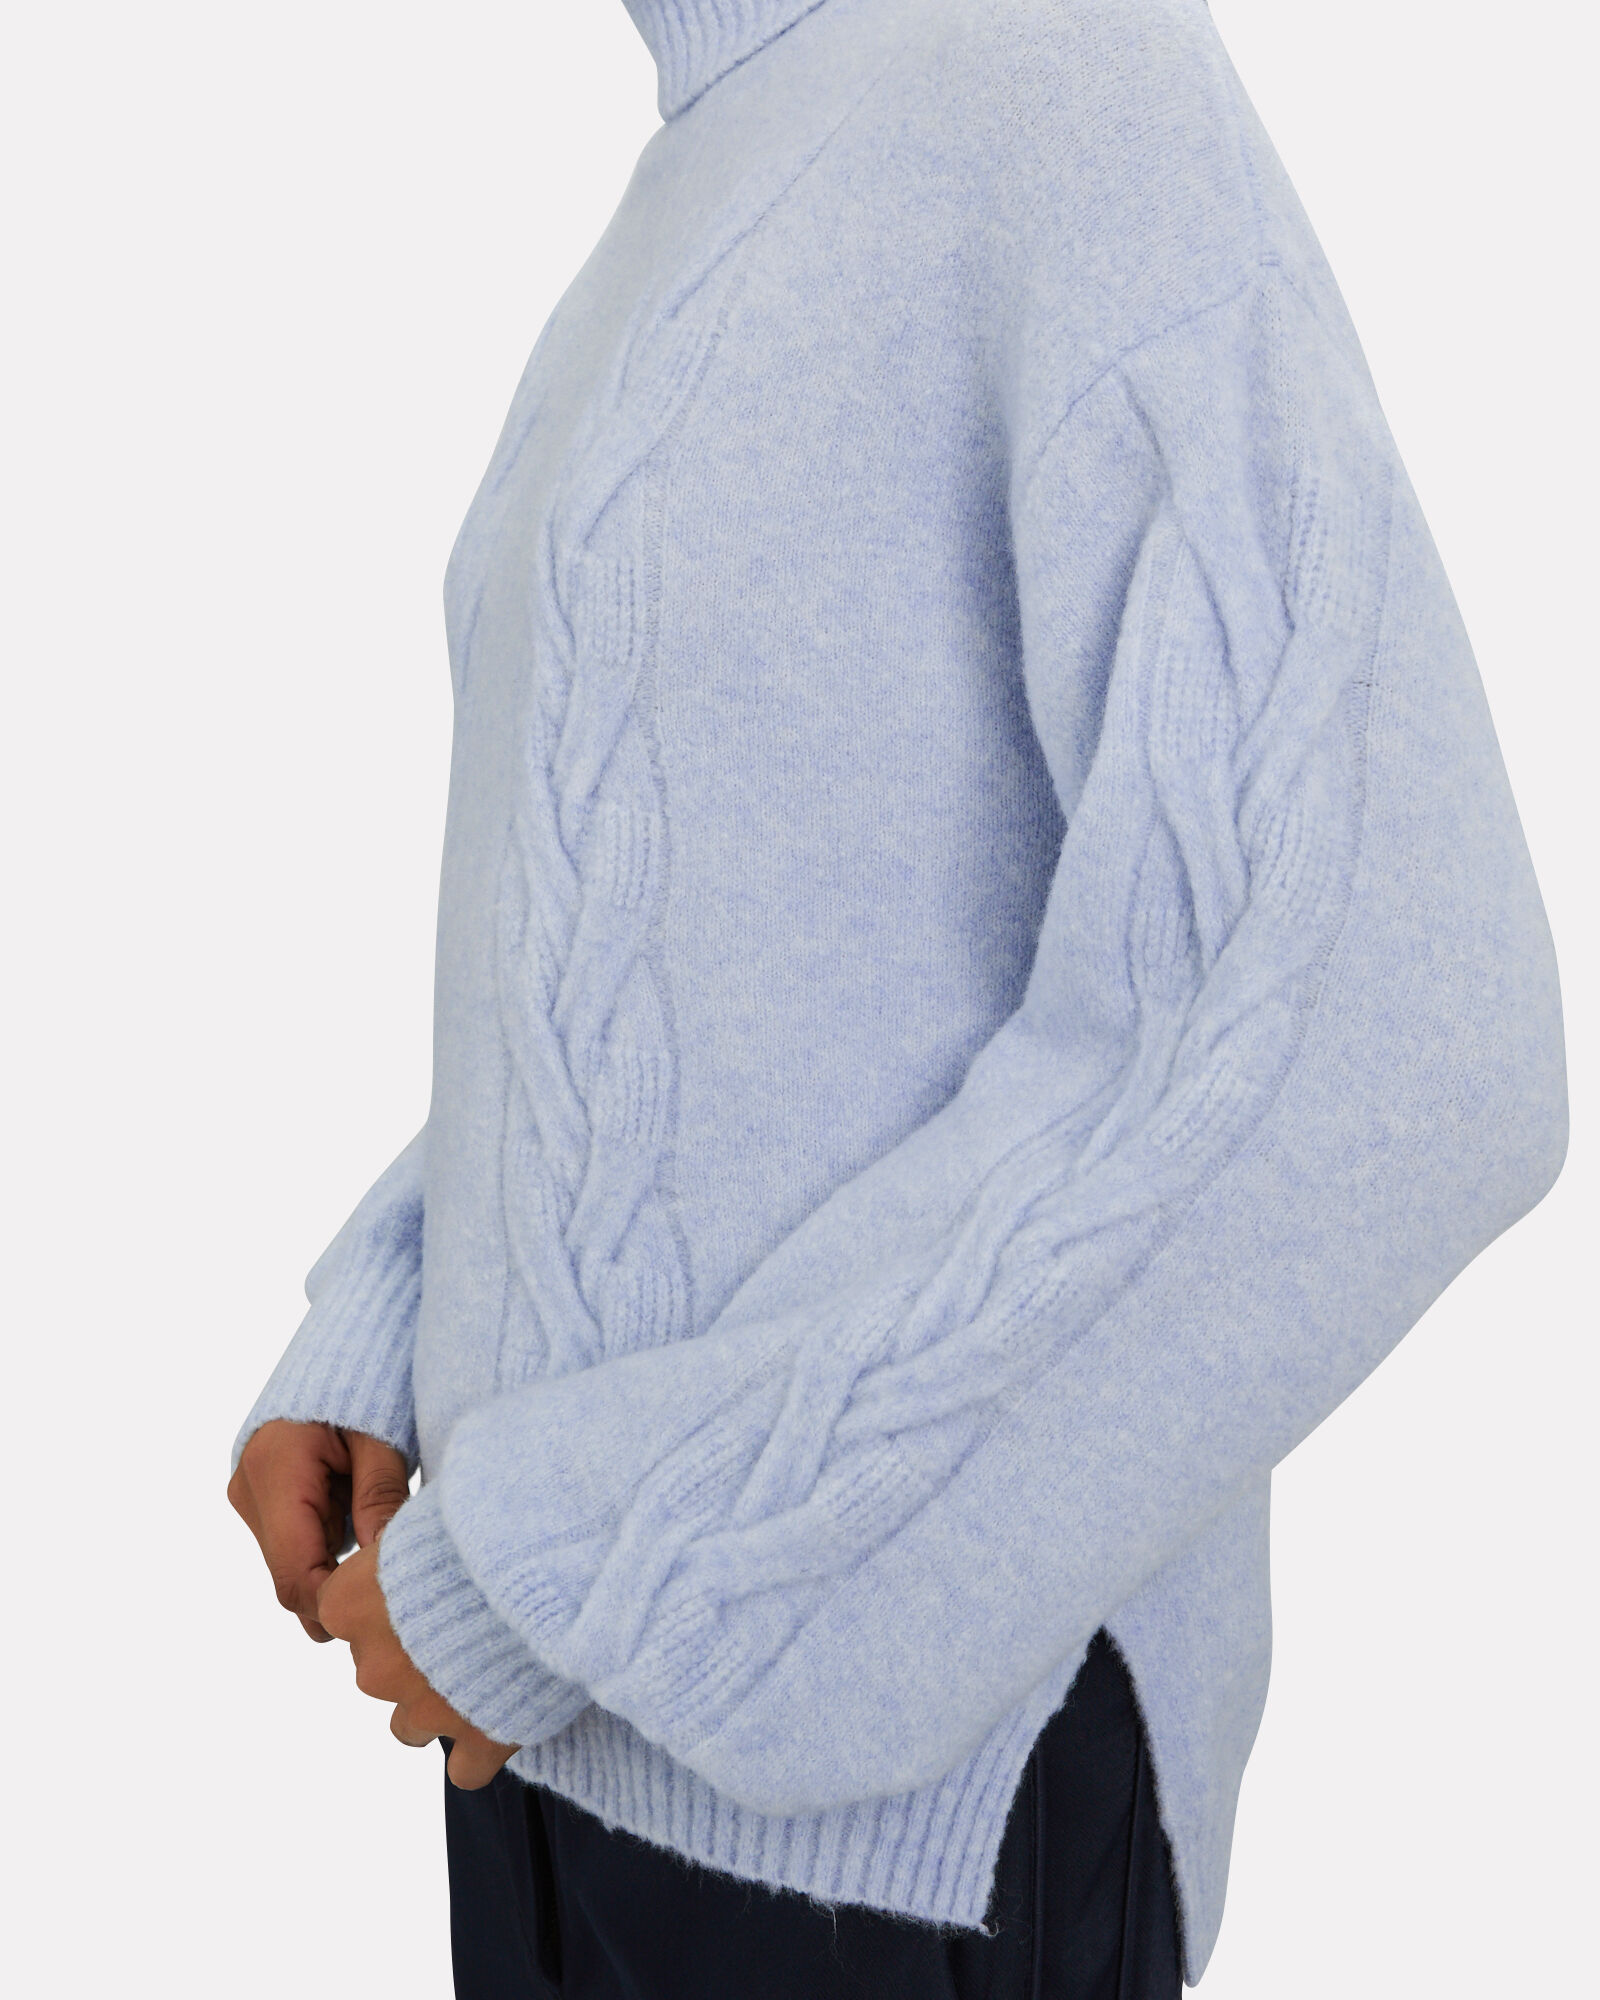 Chow Cable Knit Turtleneck Sweater, SKY BLUE, hi-res